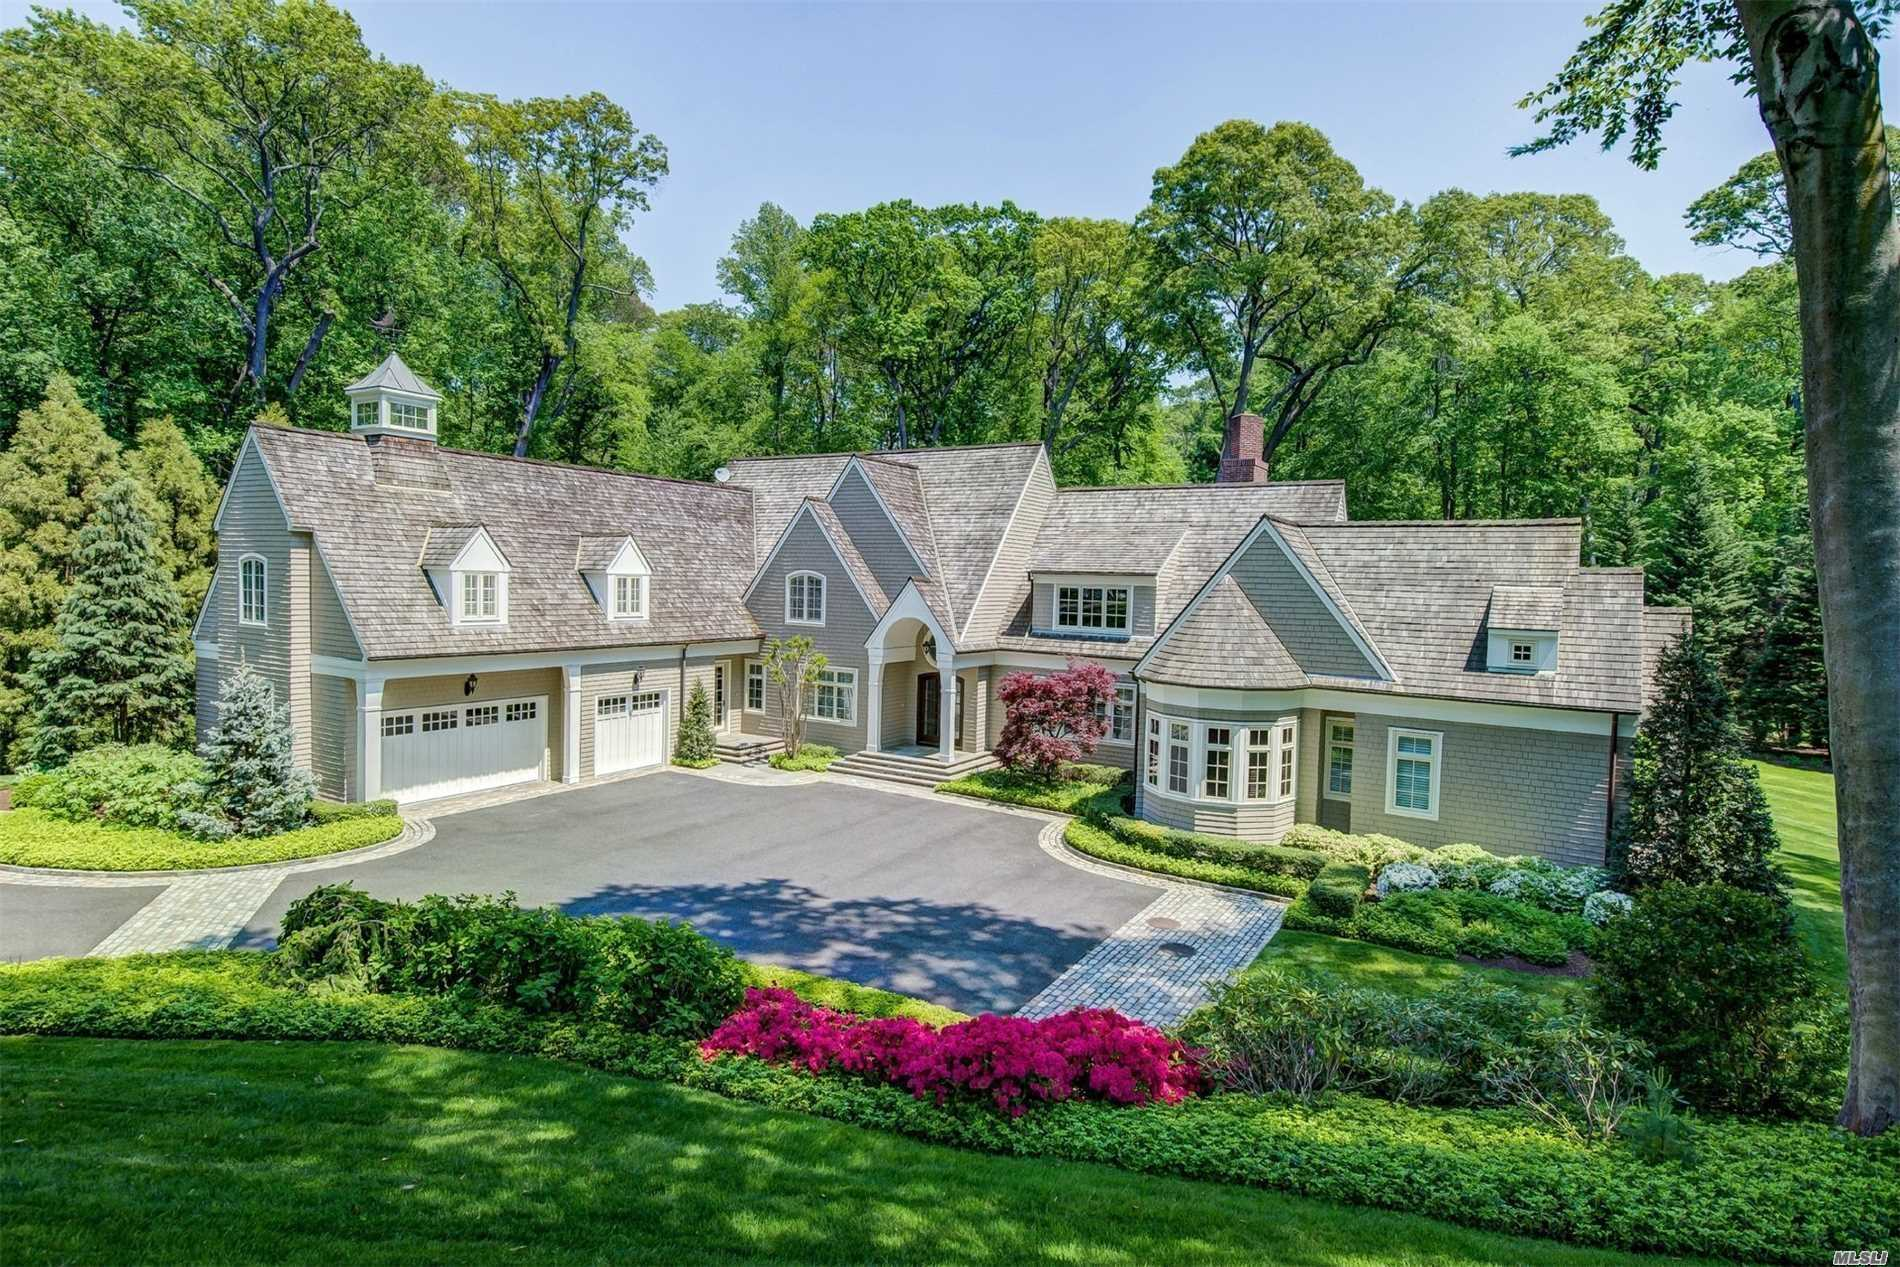 Tucked away on 5 lush acres with high ceilings and beautiful architectural details throughout is this custom 2002 residence. Exquisite millwork throughout and a fabulous first floor master suite. The residence also features two private home offices. Boasting a gourmet kitchen, large family room with fireplace. Finished lower level with paddle court, gym & game room. Minutes from a nature preserve & close to shops & restaurants & beaches HOA fees. Ask about virutal tours,Matterport,survey and floor plans